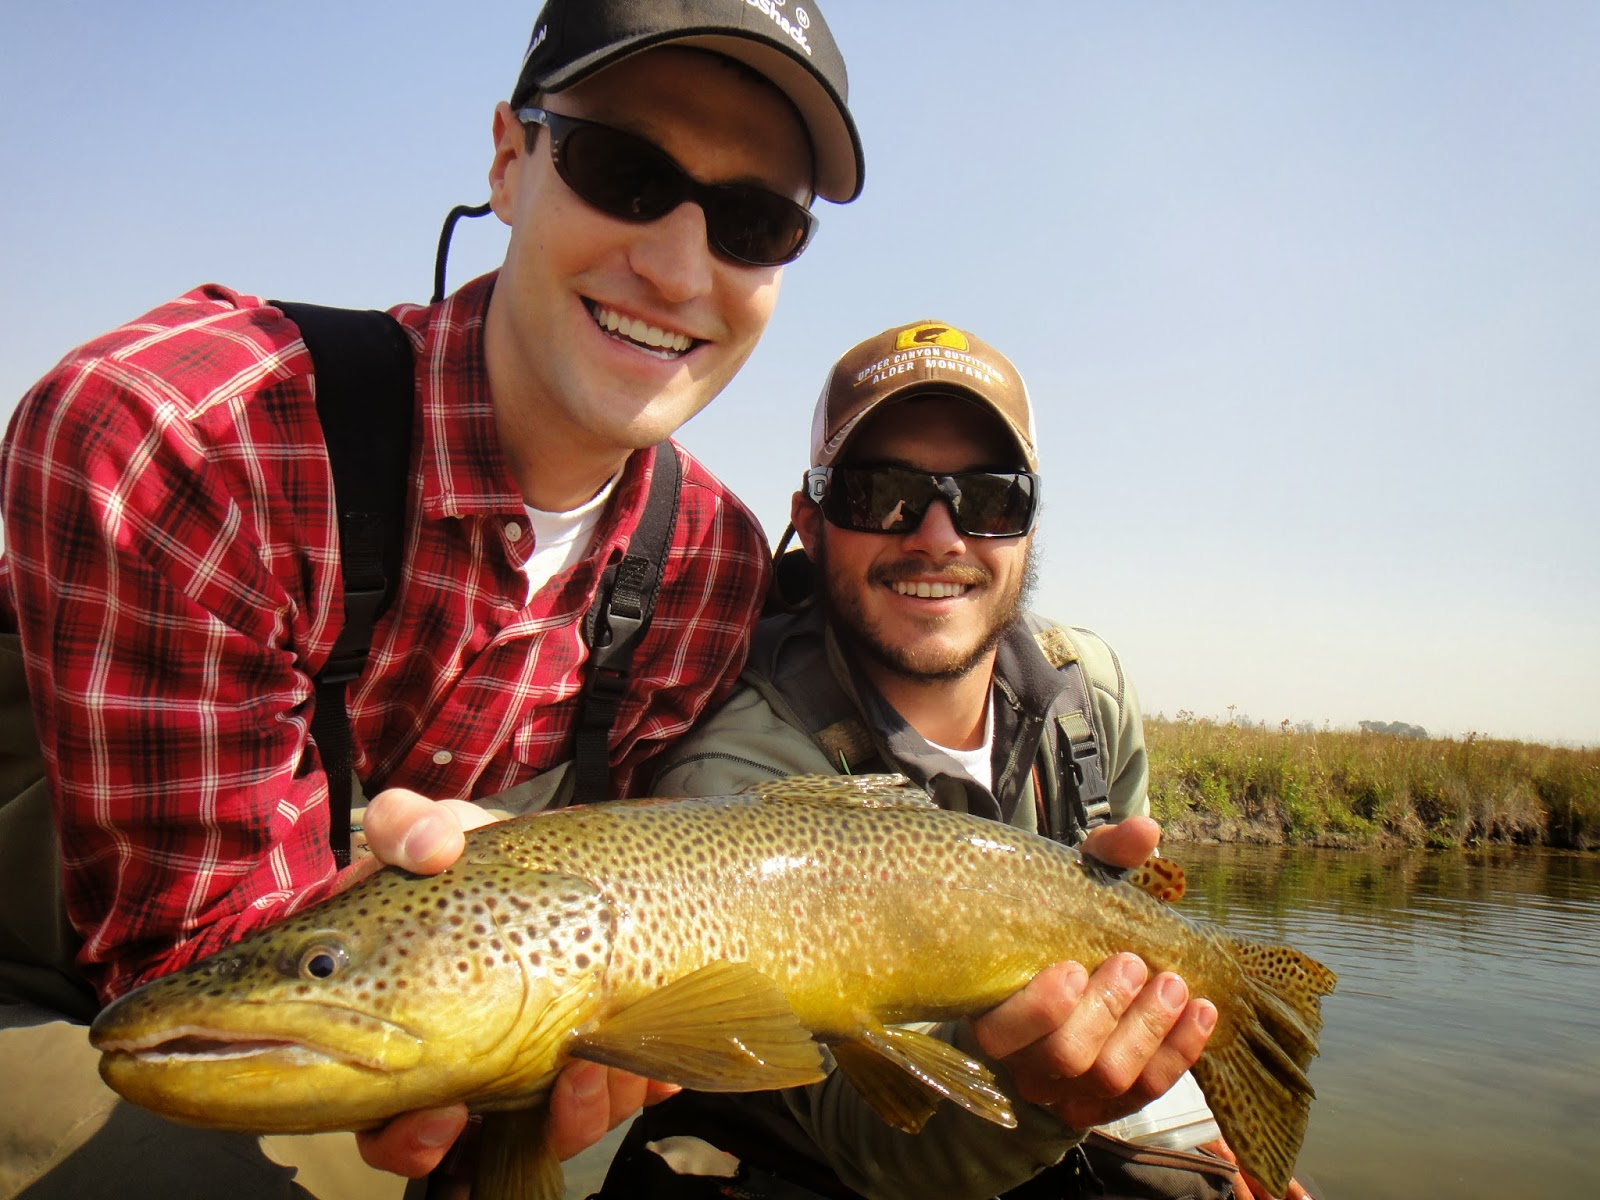 Montana fly fishing trip 2014 delamere hopkins for Montana fishing trips